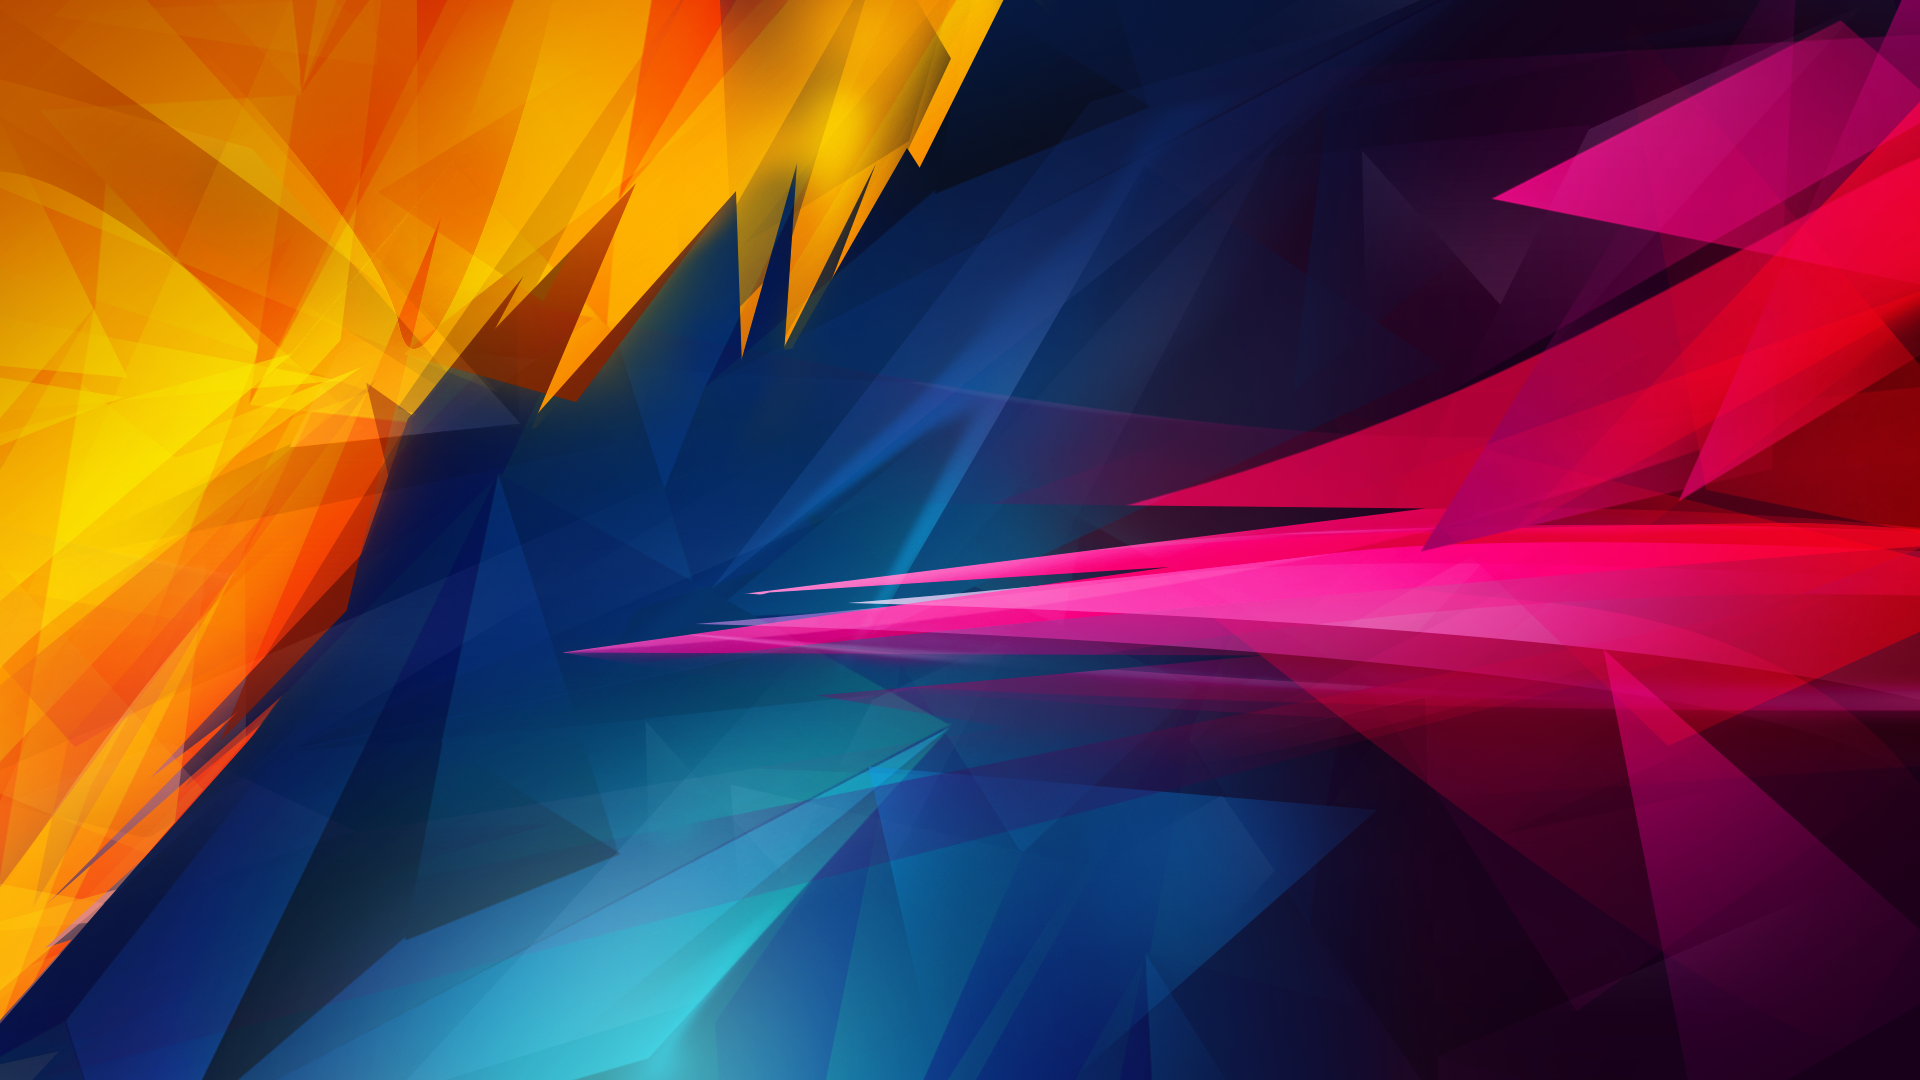 Abstract Wallpaper 1080p by SUPERsaeJANG on DeviantArt